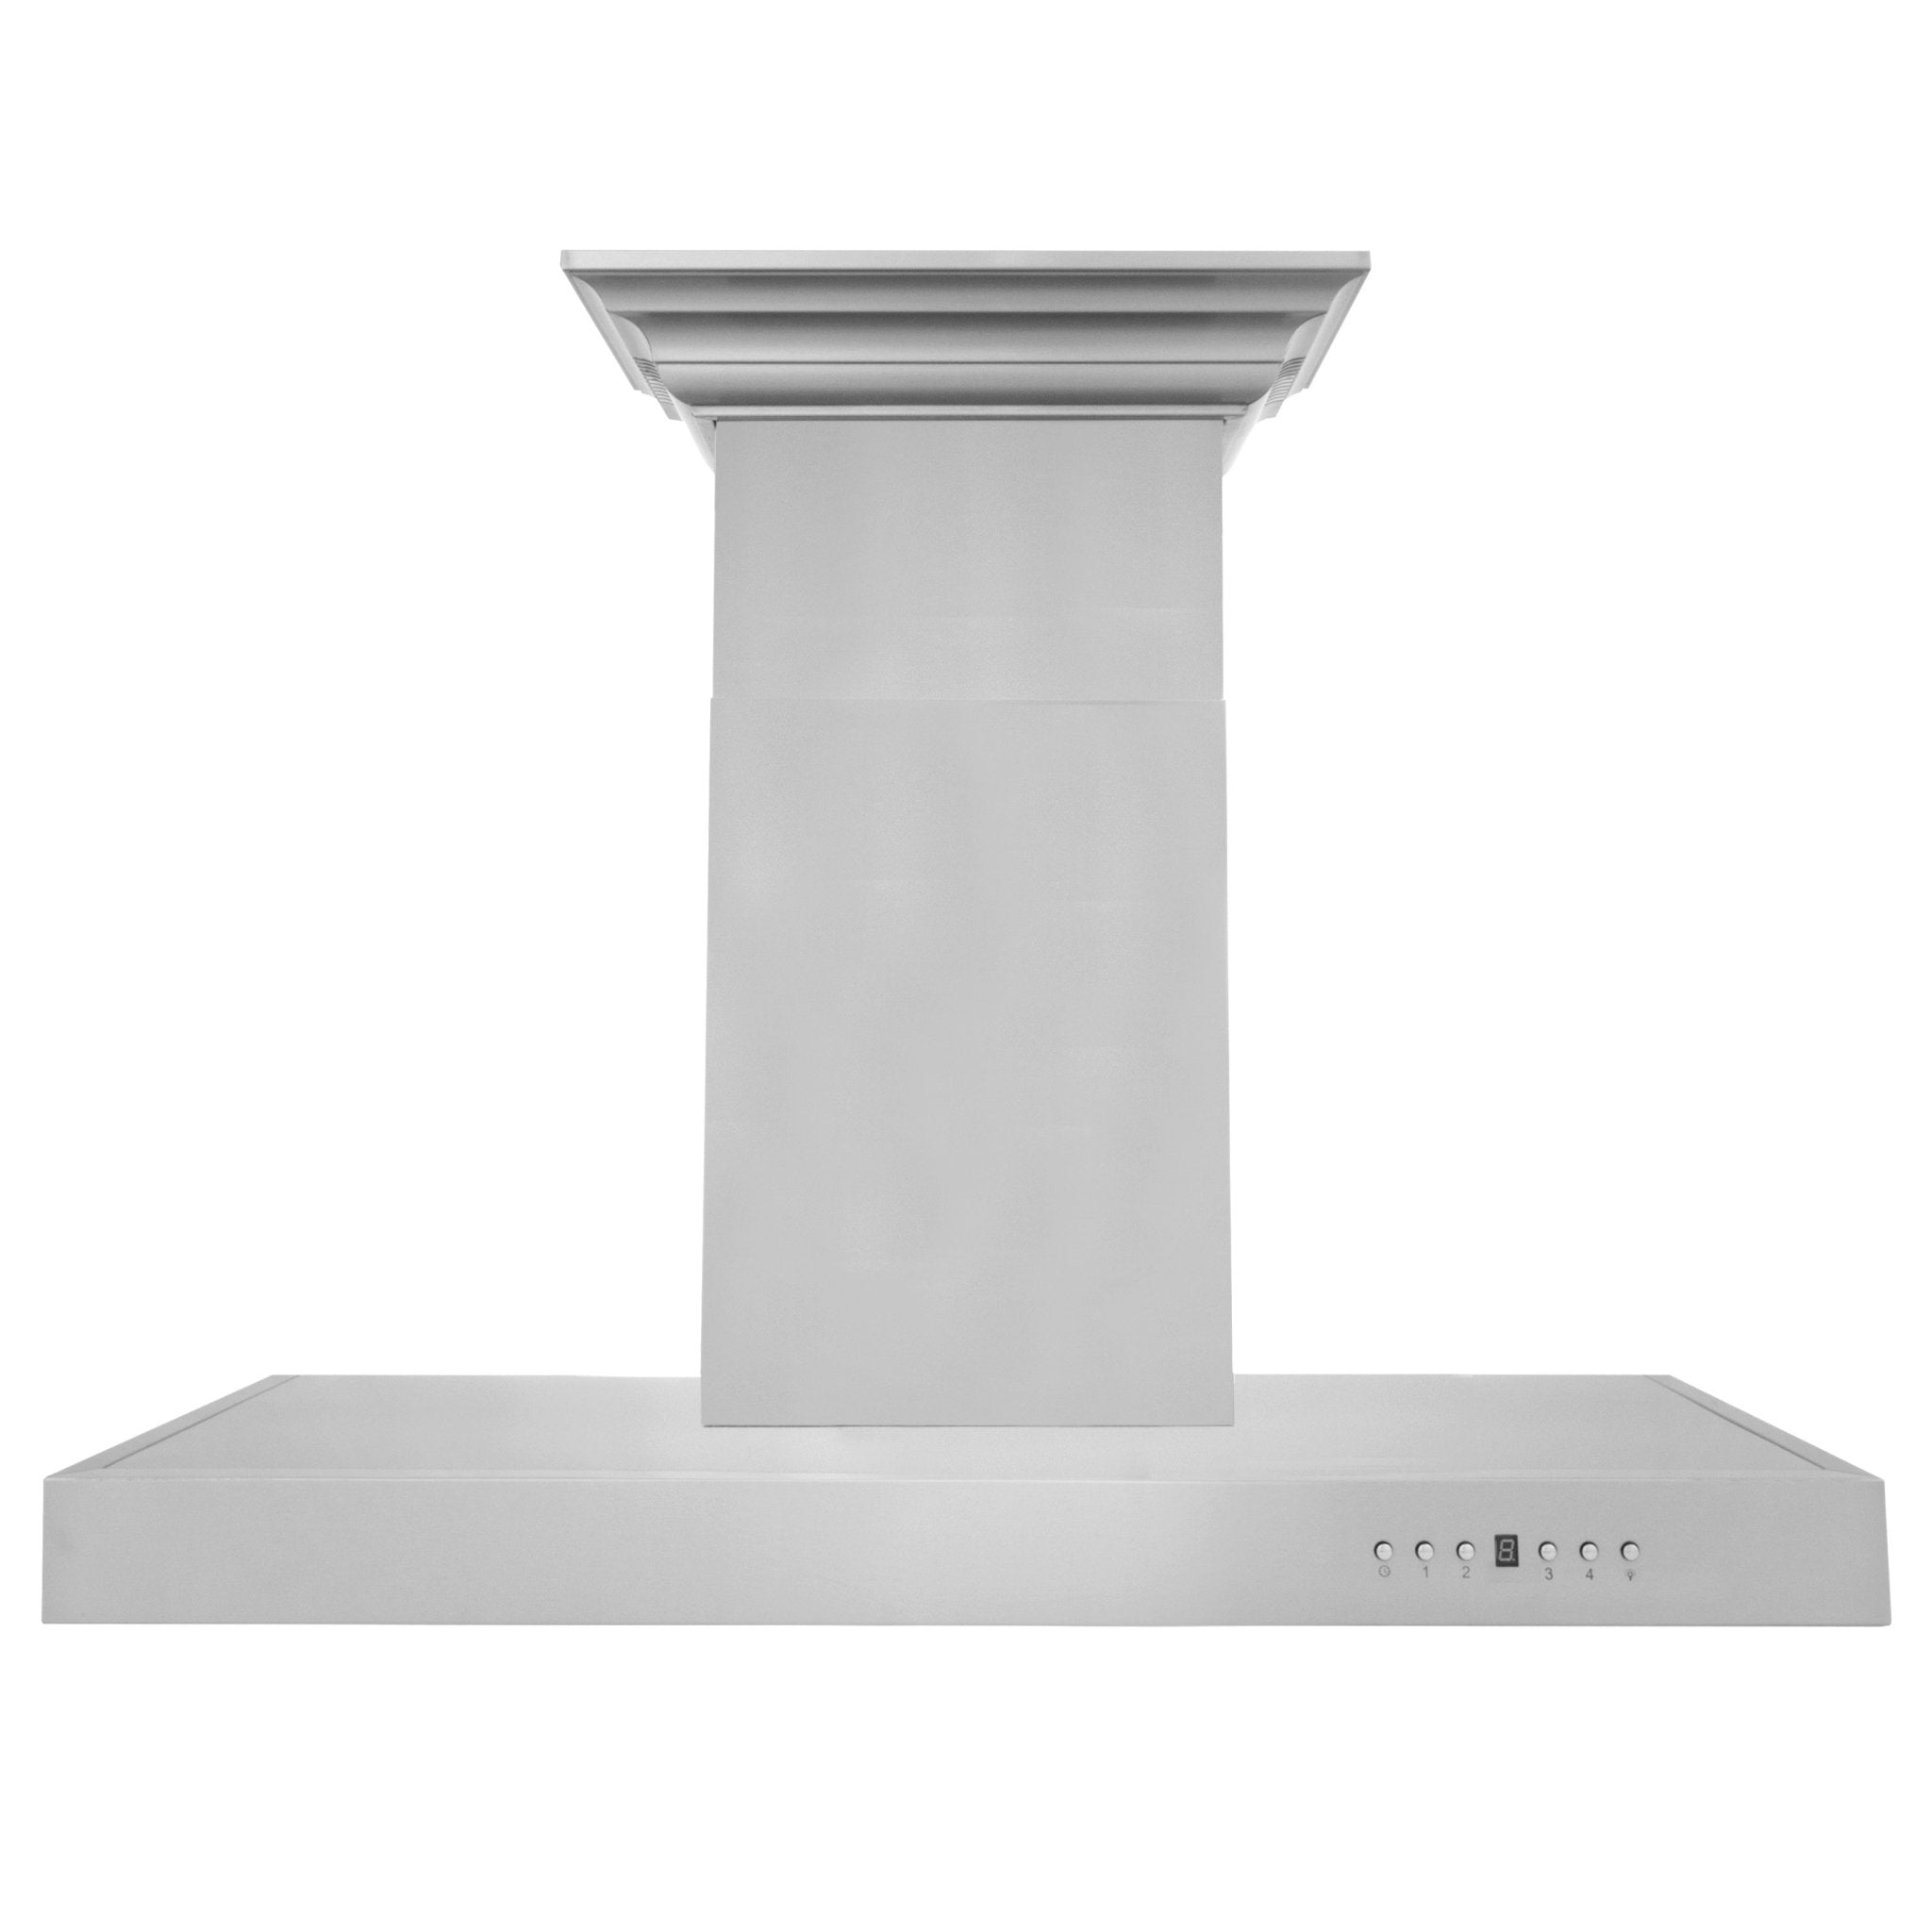 ZLINE Wall Mount Range Hood In Stainless Steel With Built-In CrownSound® Bluetooth Speakers (KECRN-BT)